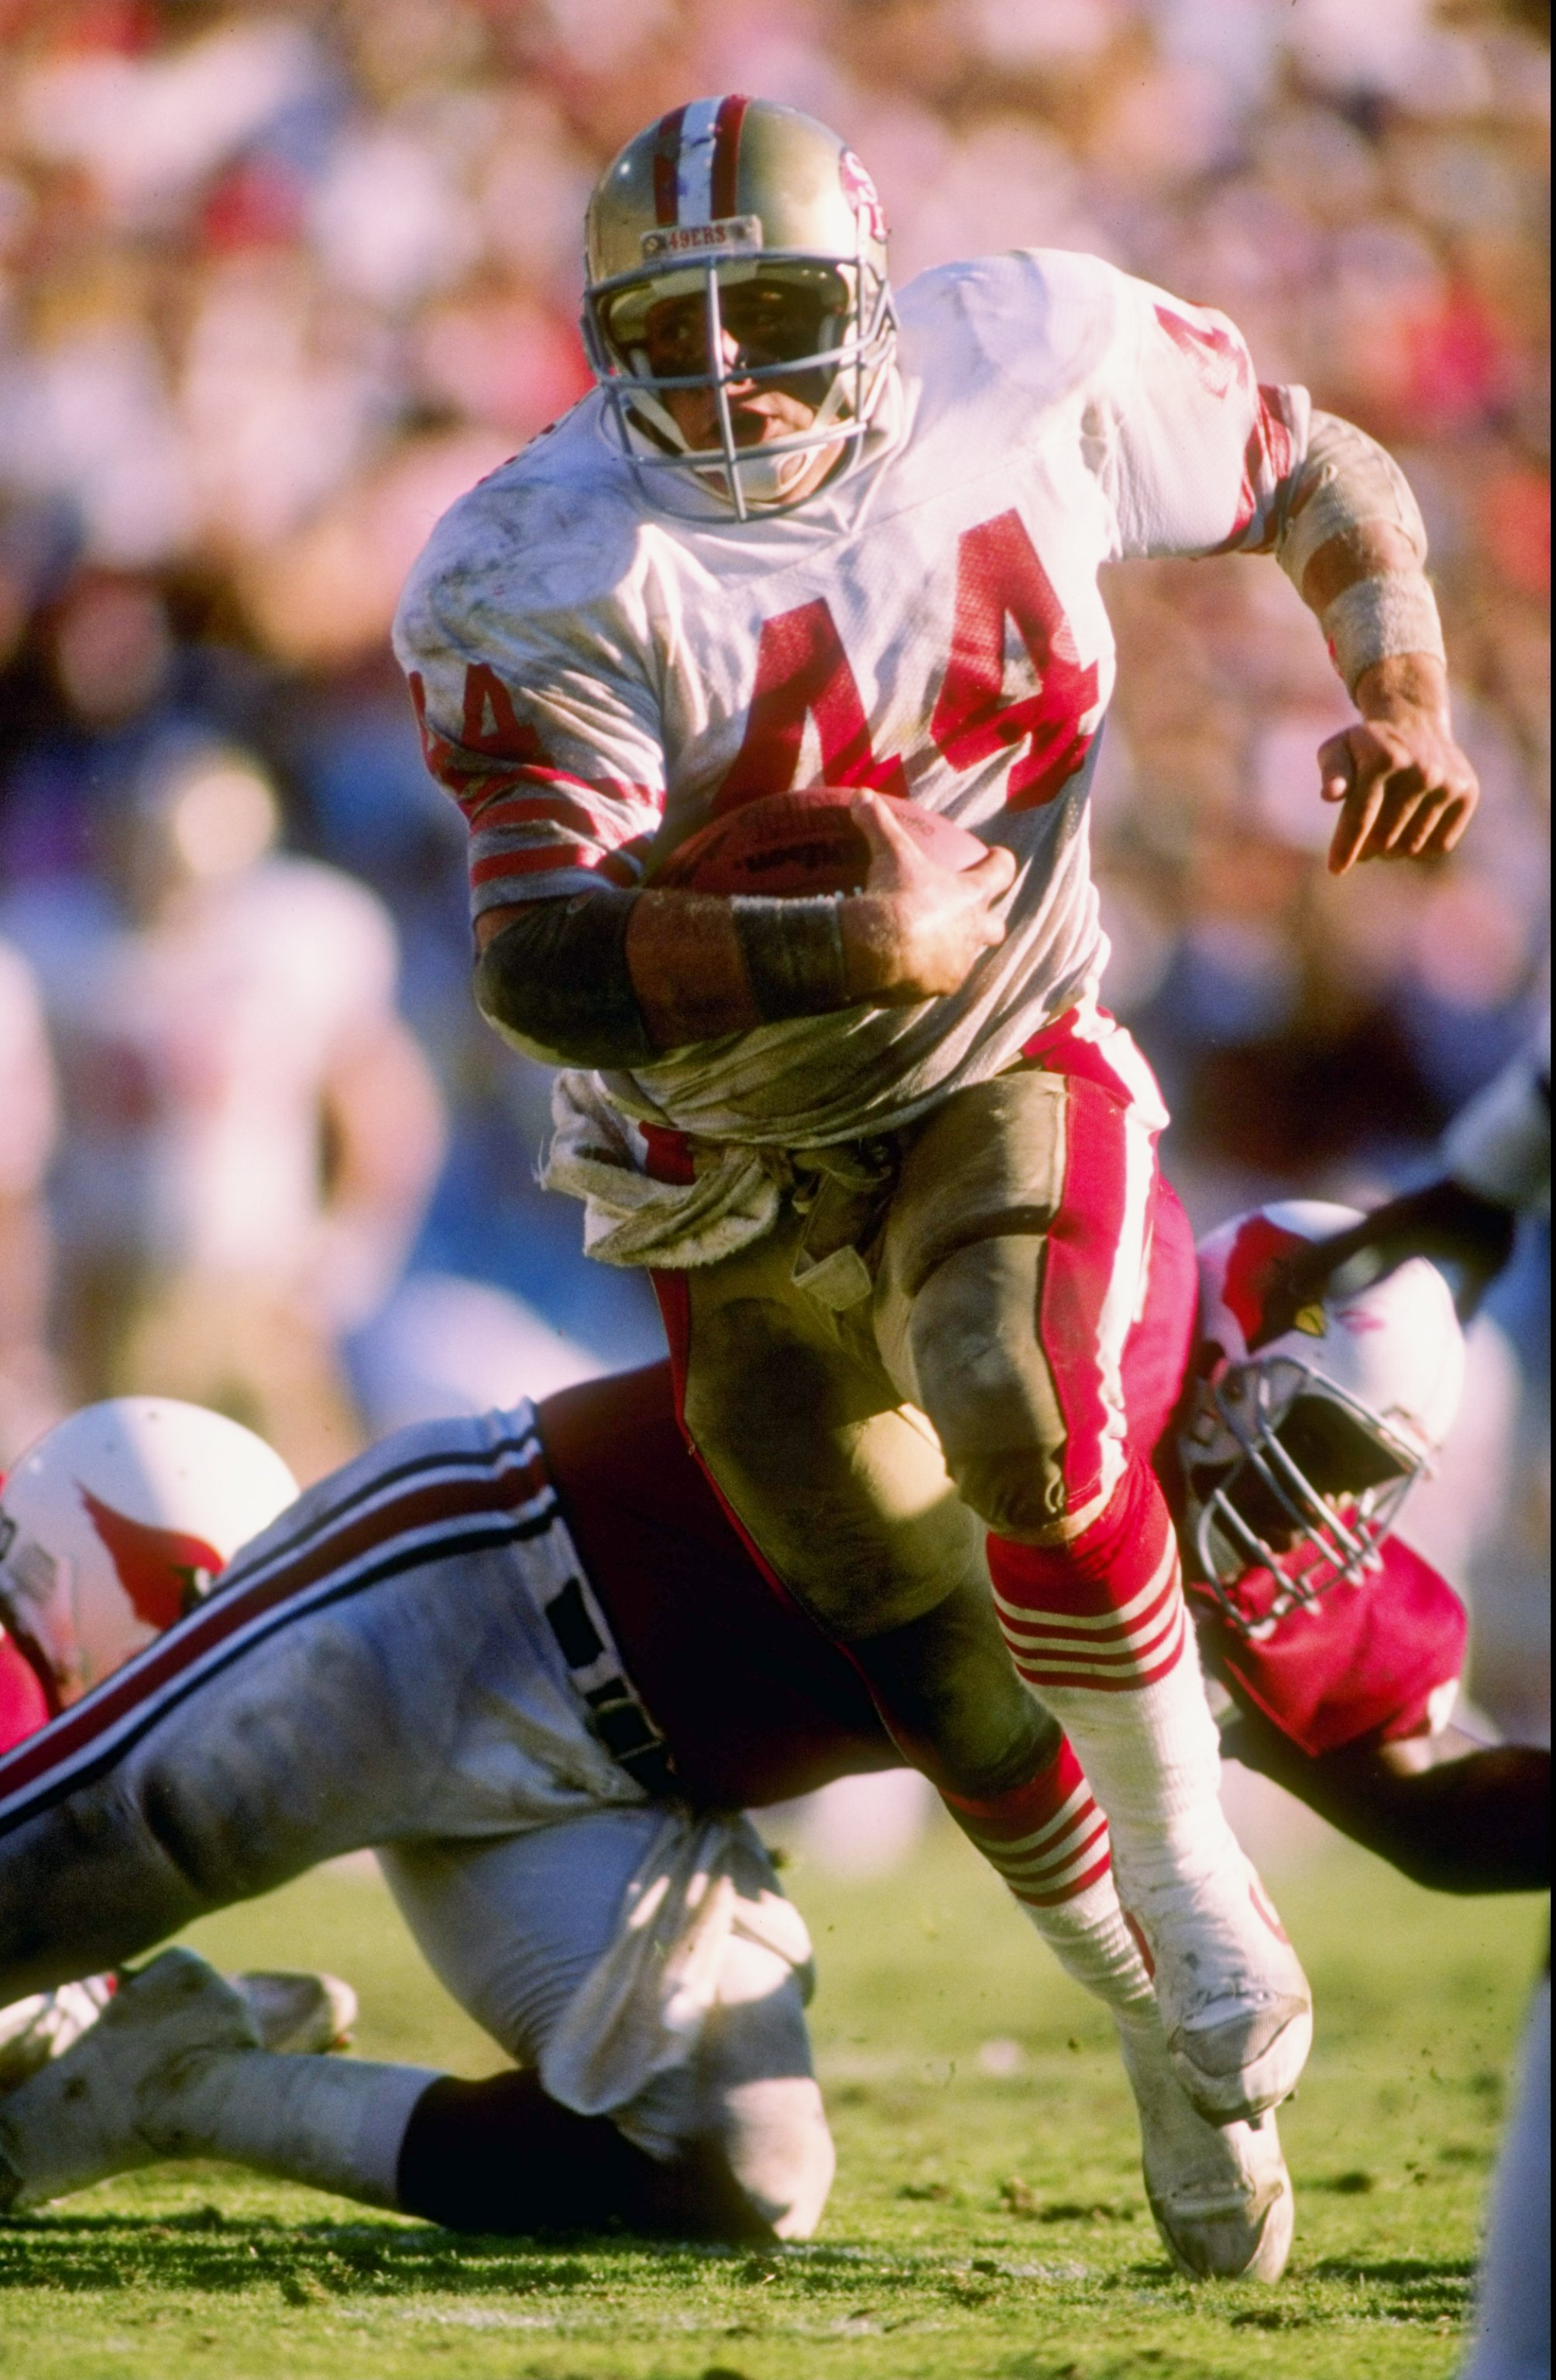 6 Nov 1988: Fullback Tom Rathman of the San Francisco 49ers runs down the field during a game against the Phoenix Cardinals at Sun Devil Stadium in Tempe, Arizona. The Cardinals won the game 24-23.